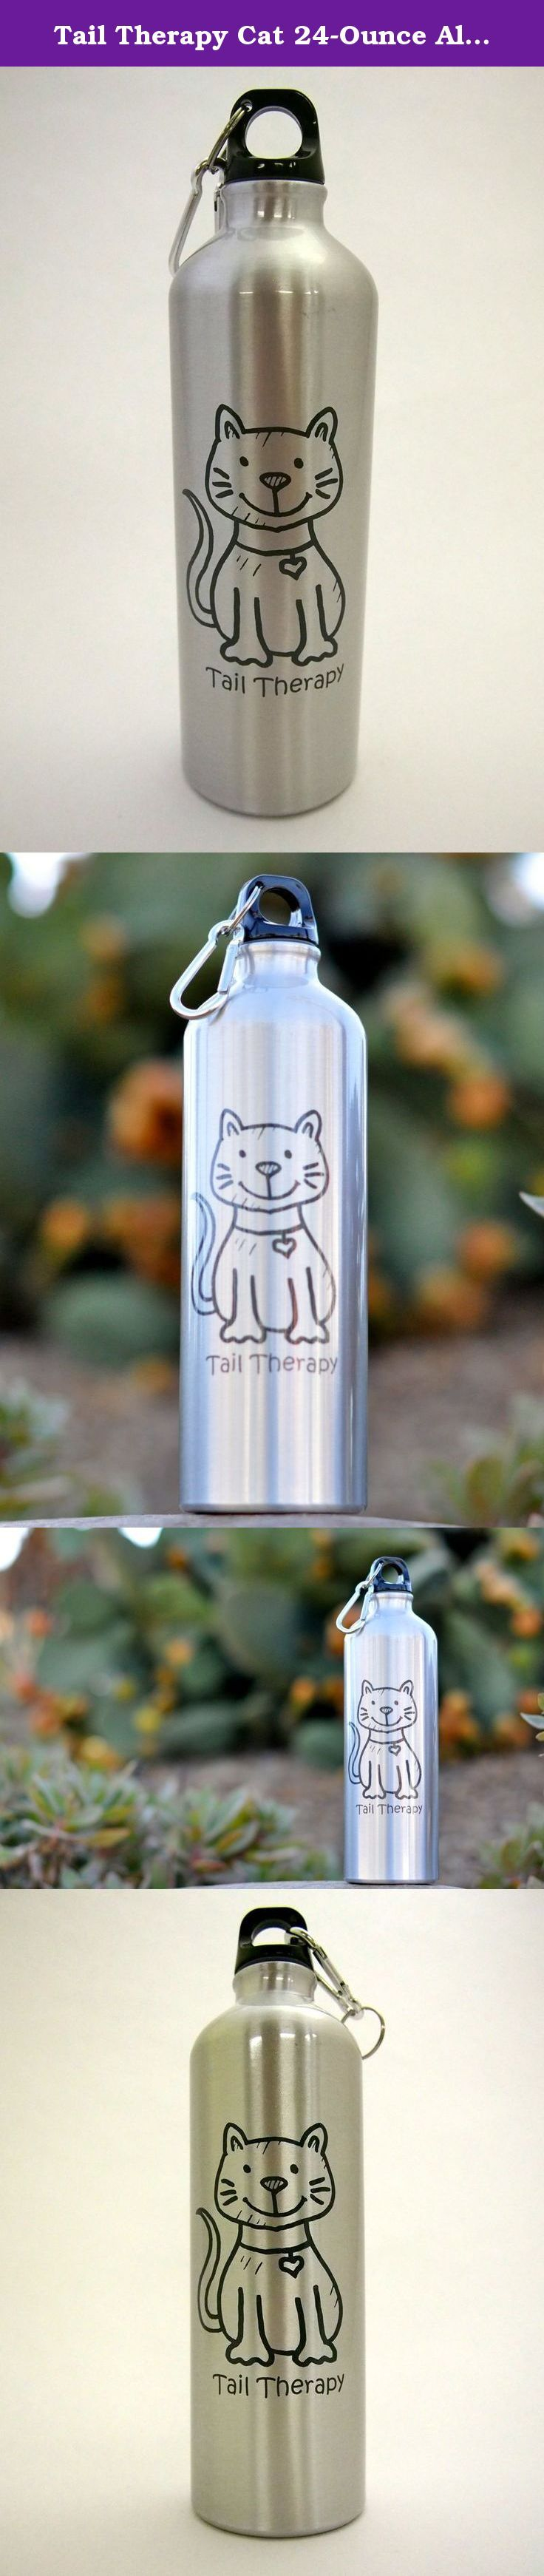 Tail Therapy Cat 24-Ounce Aluminum Water Bottle -- Carabiner Clip included, screw top, great for hiking, camping, on the go, anywhere. Take your smile to go with our TailTherapyTM sturdy and lightweight 24-ounce aluminum bike bottle. The screw-on, spill resistant lid and handy carabiner clip keeps your drink right where you want it. Each bottle features a bright stainless finish paired with our iconic TailTherapyTM mascot Bailey in a deep charcoal gray for a cool tone-on-tone effect…